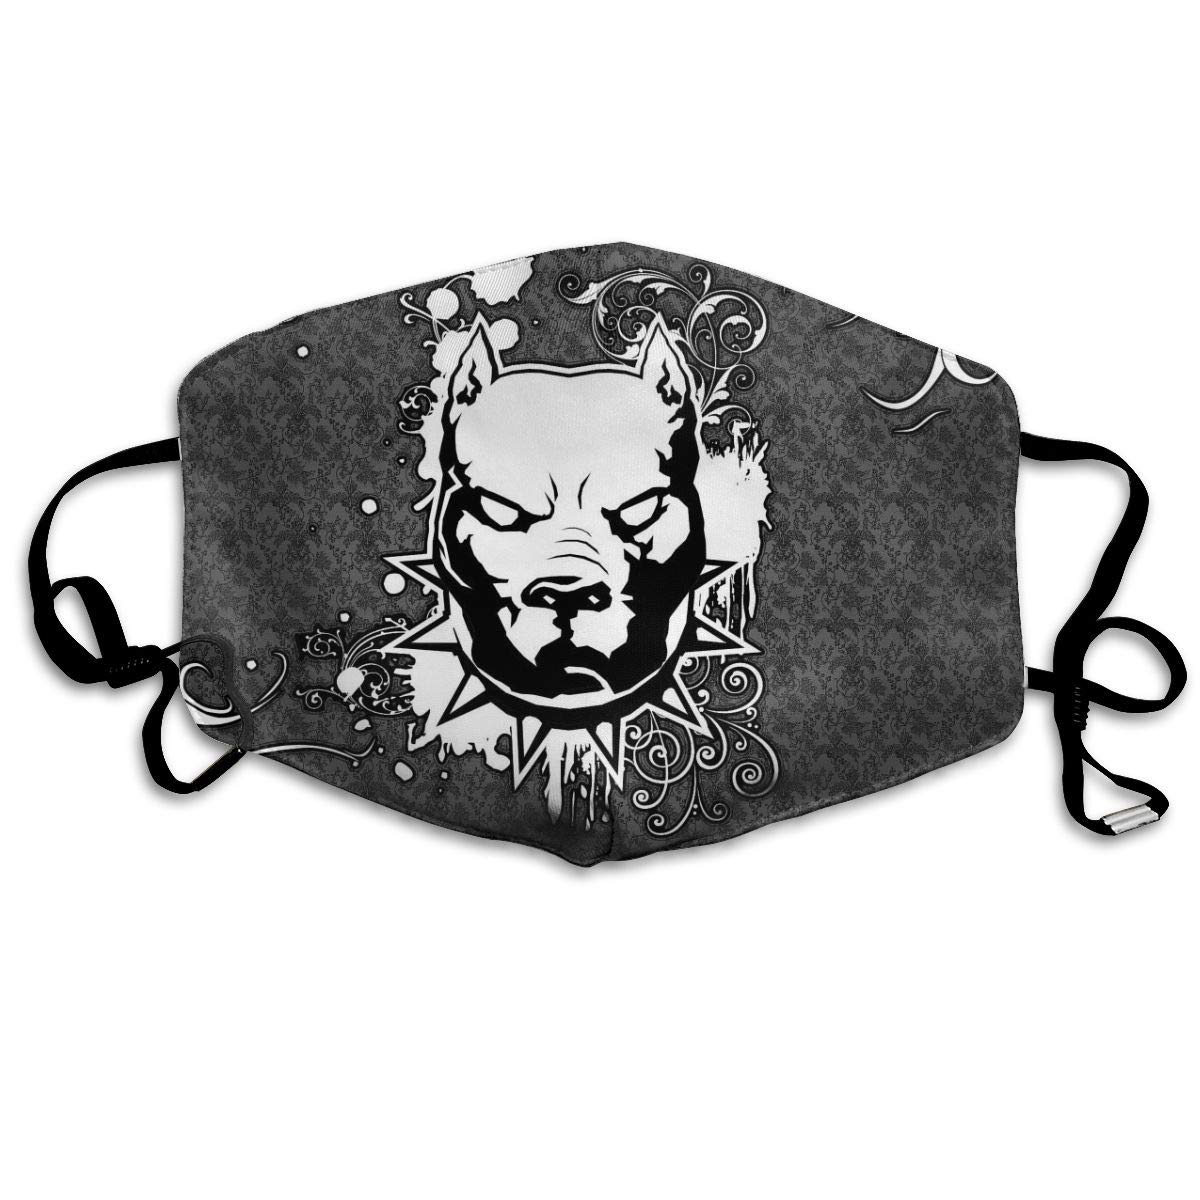 Pitbull Unisex Mask Indoor Outdoor Cycling Camping Travel Windproof Sun Anti Dust Mask Mouth With Adjustable Ear Loops